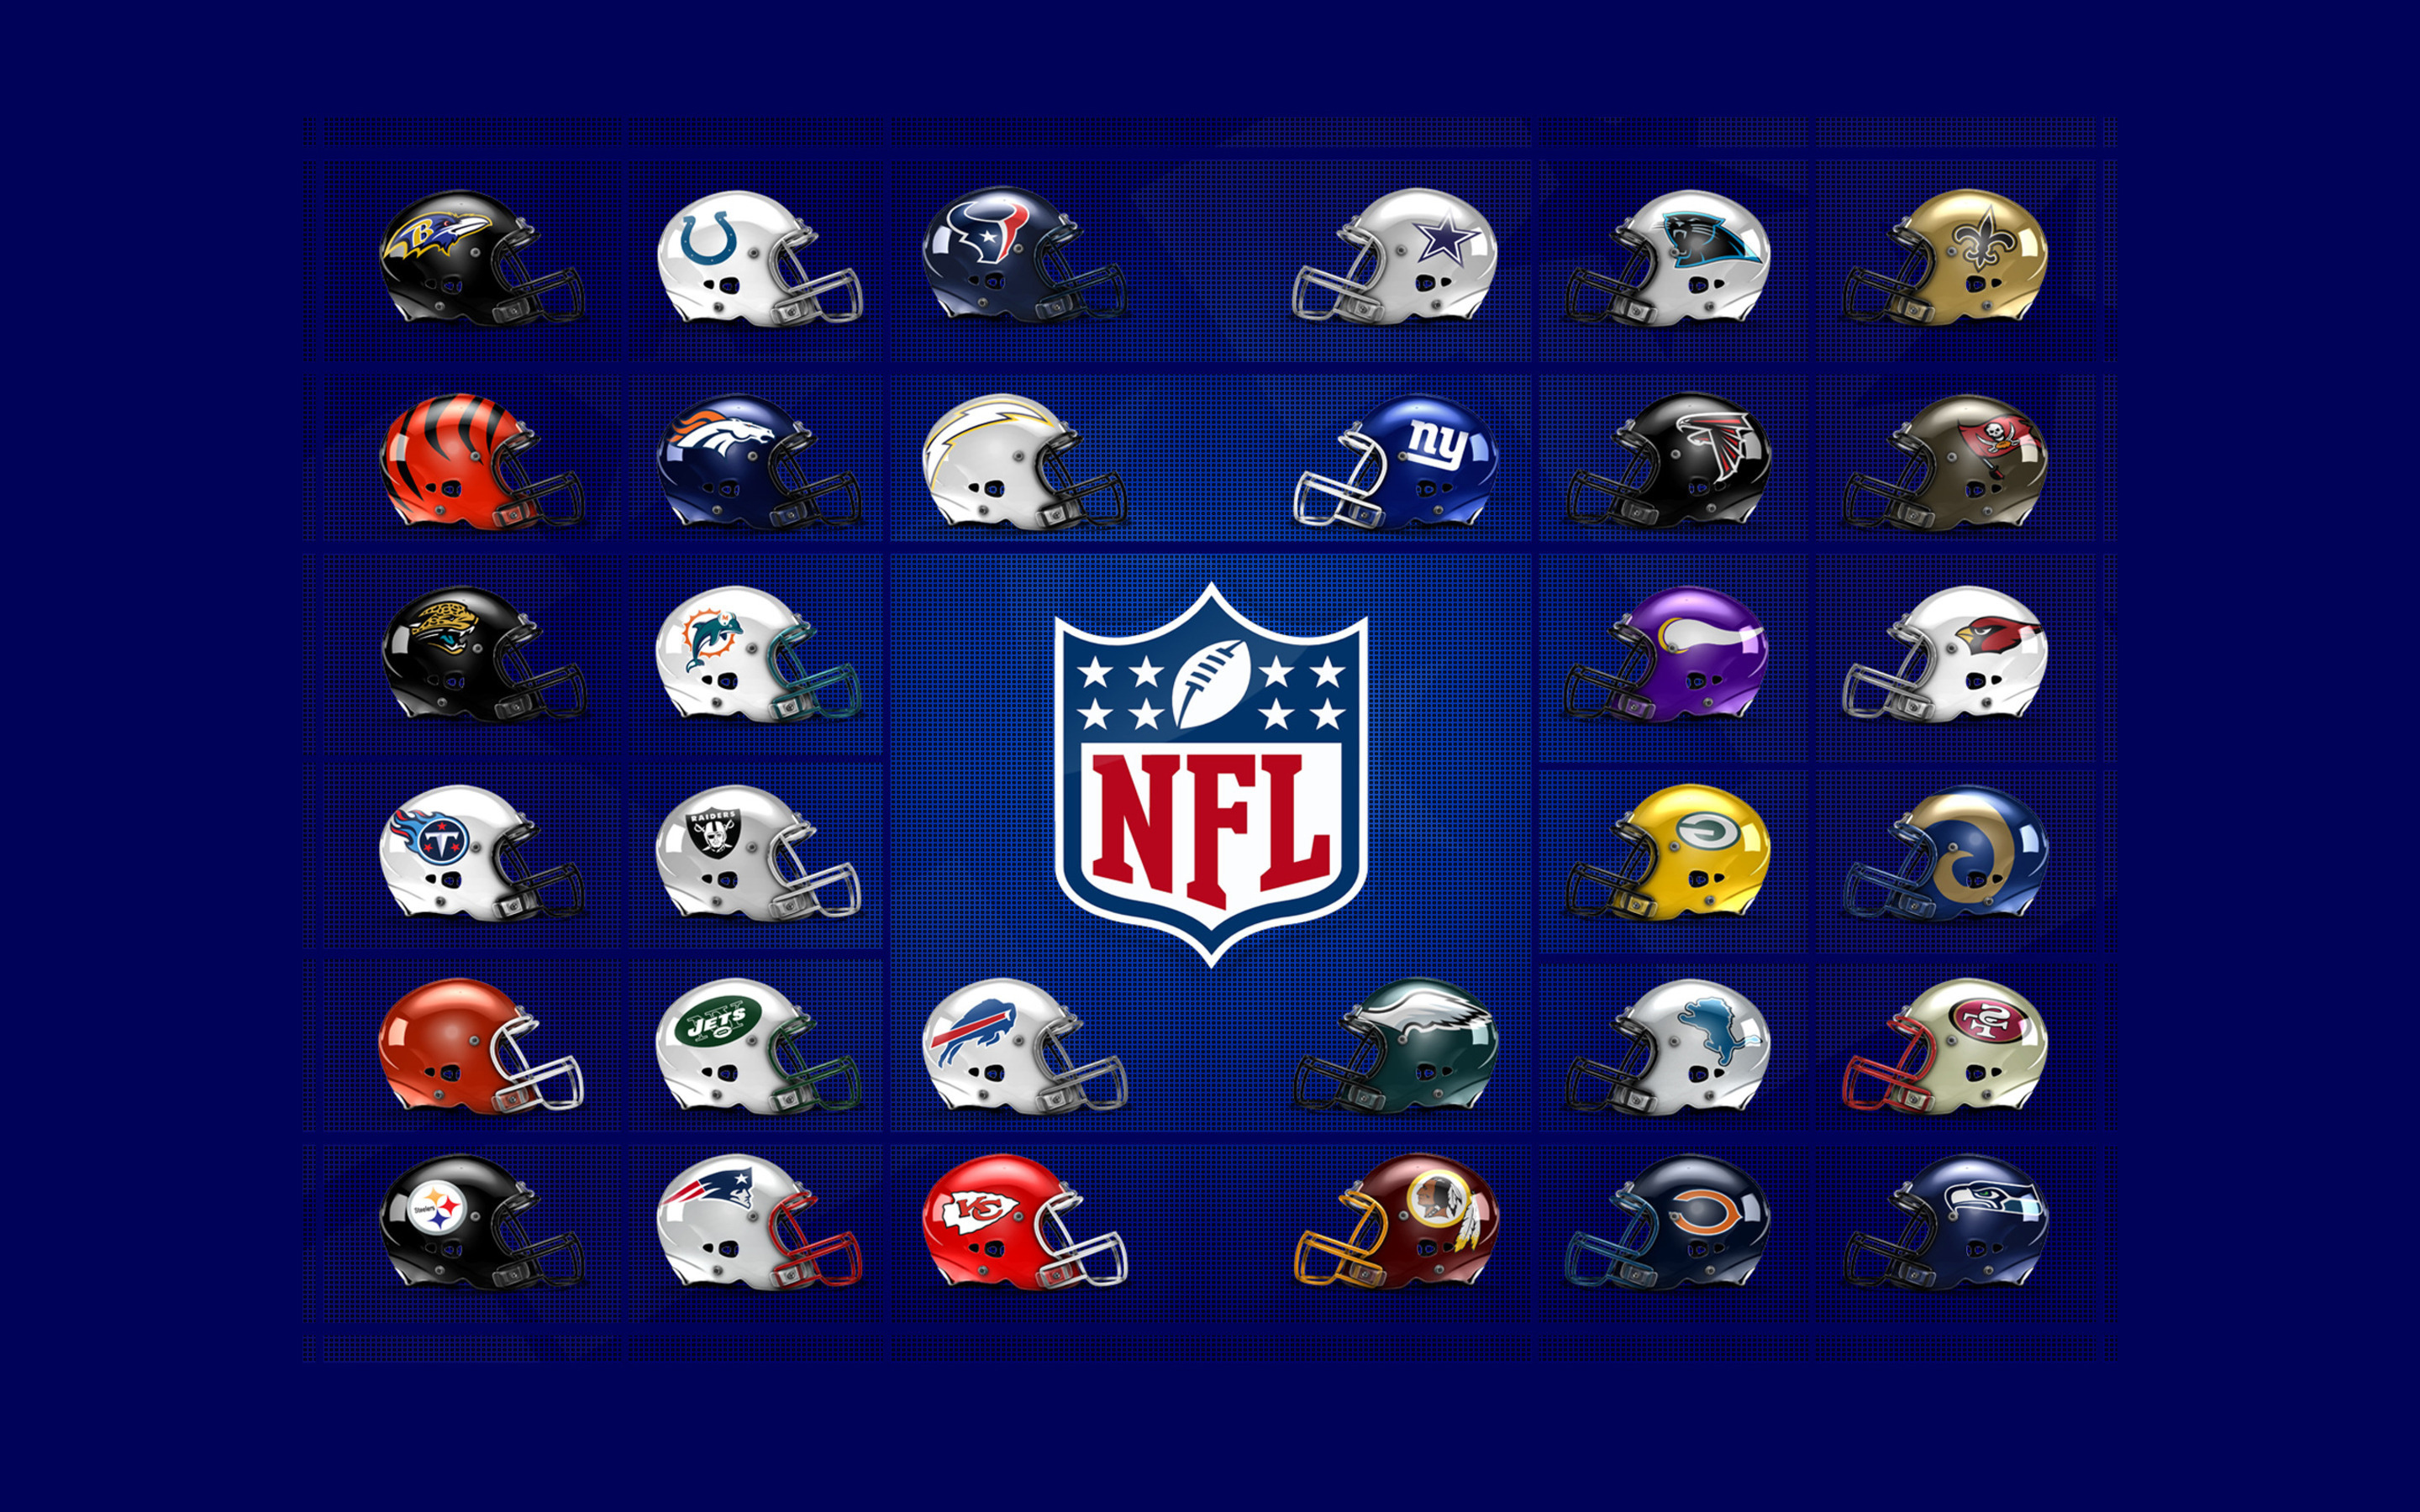 NFL Logo Wallpaper HD 2880x1800 329243 KB 2880x1800